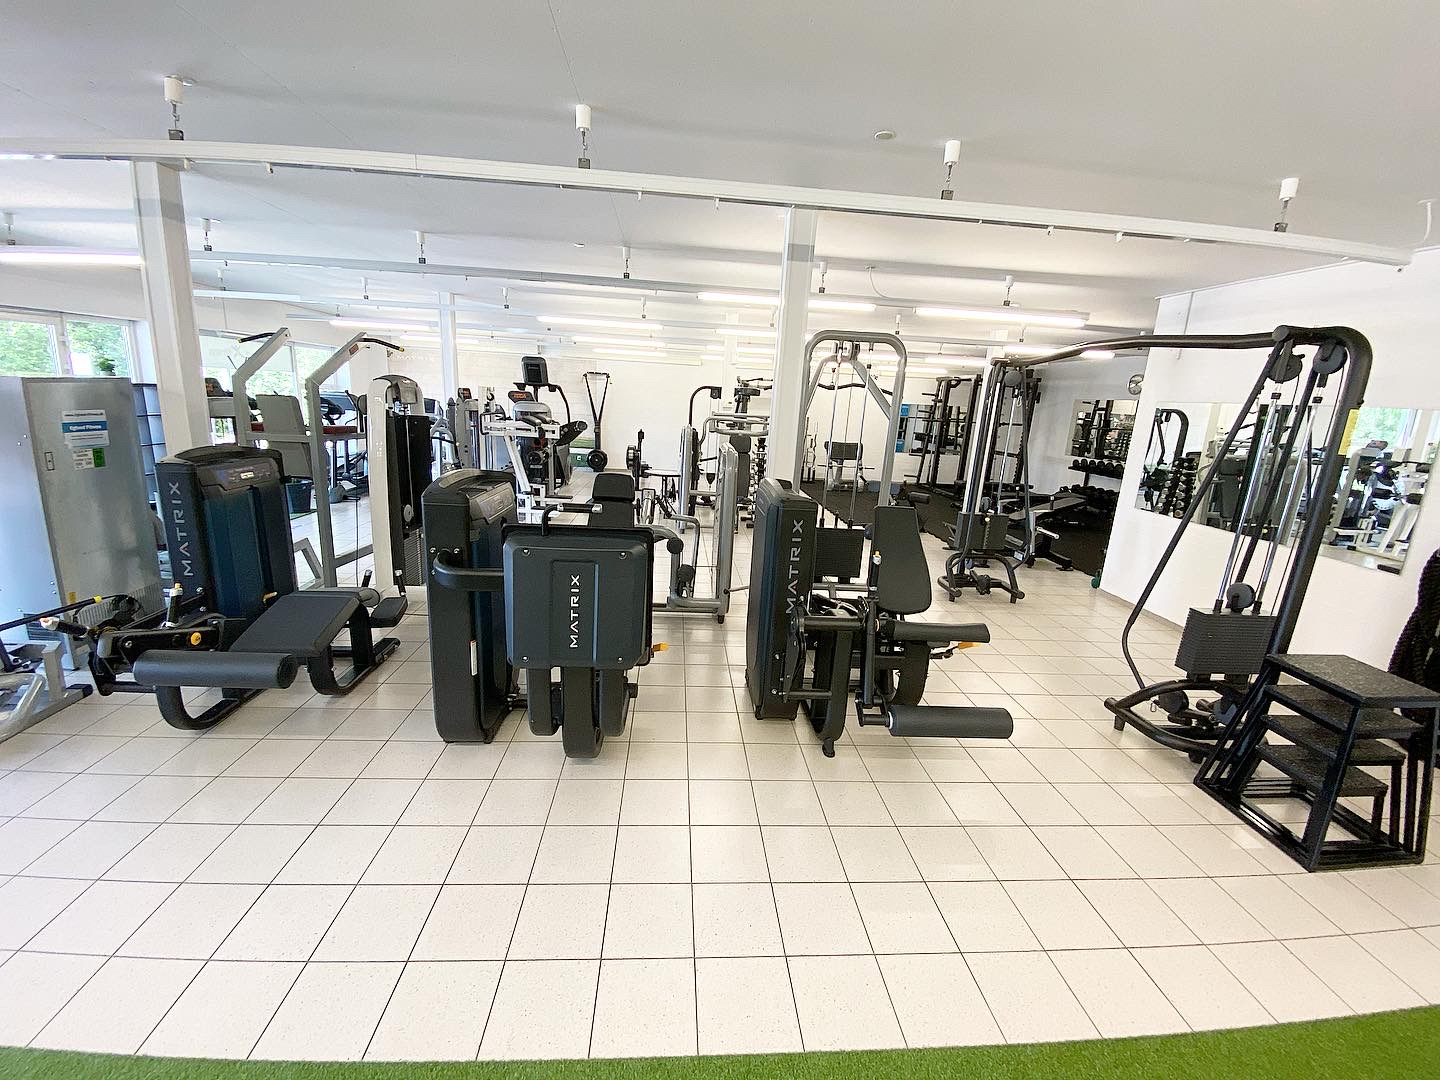 EgtvedFitness Leg Machines